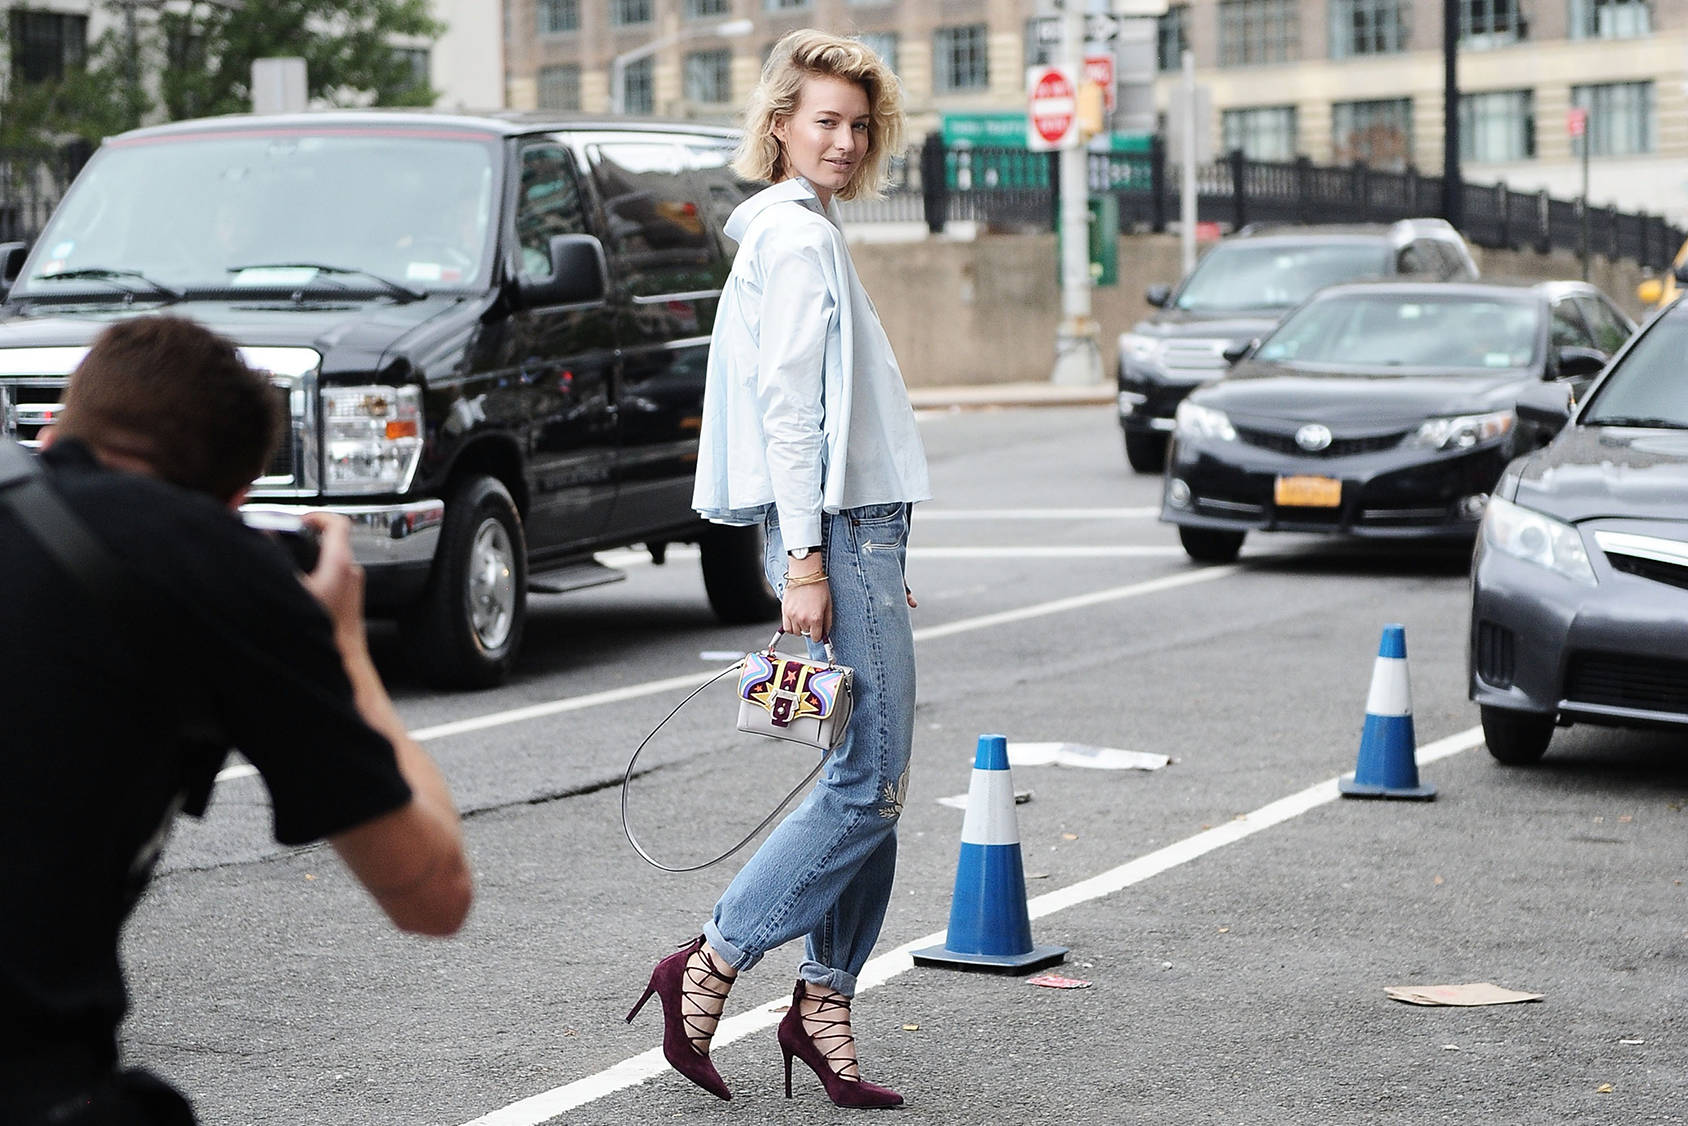 Zanita Whittington gives you the full report from New York fashion week, Getty Images.